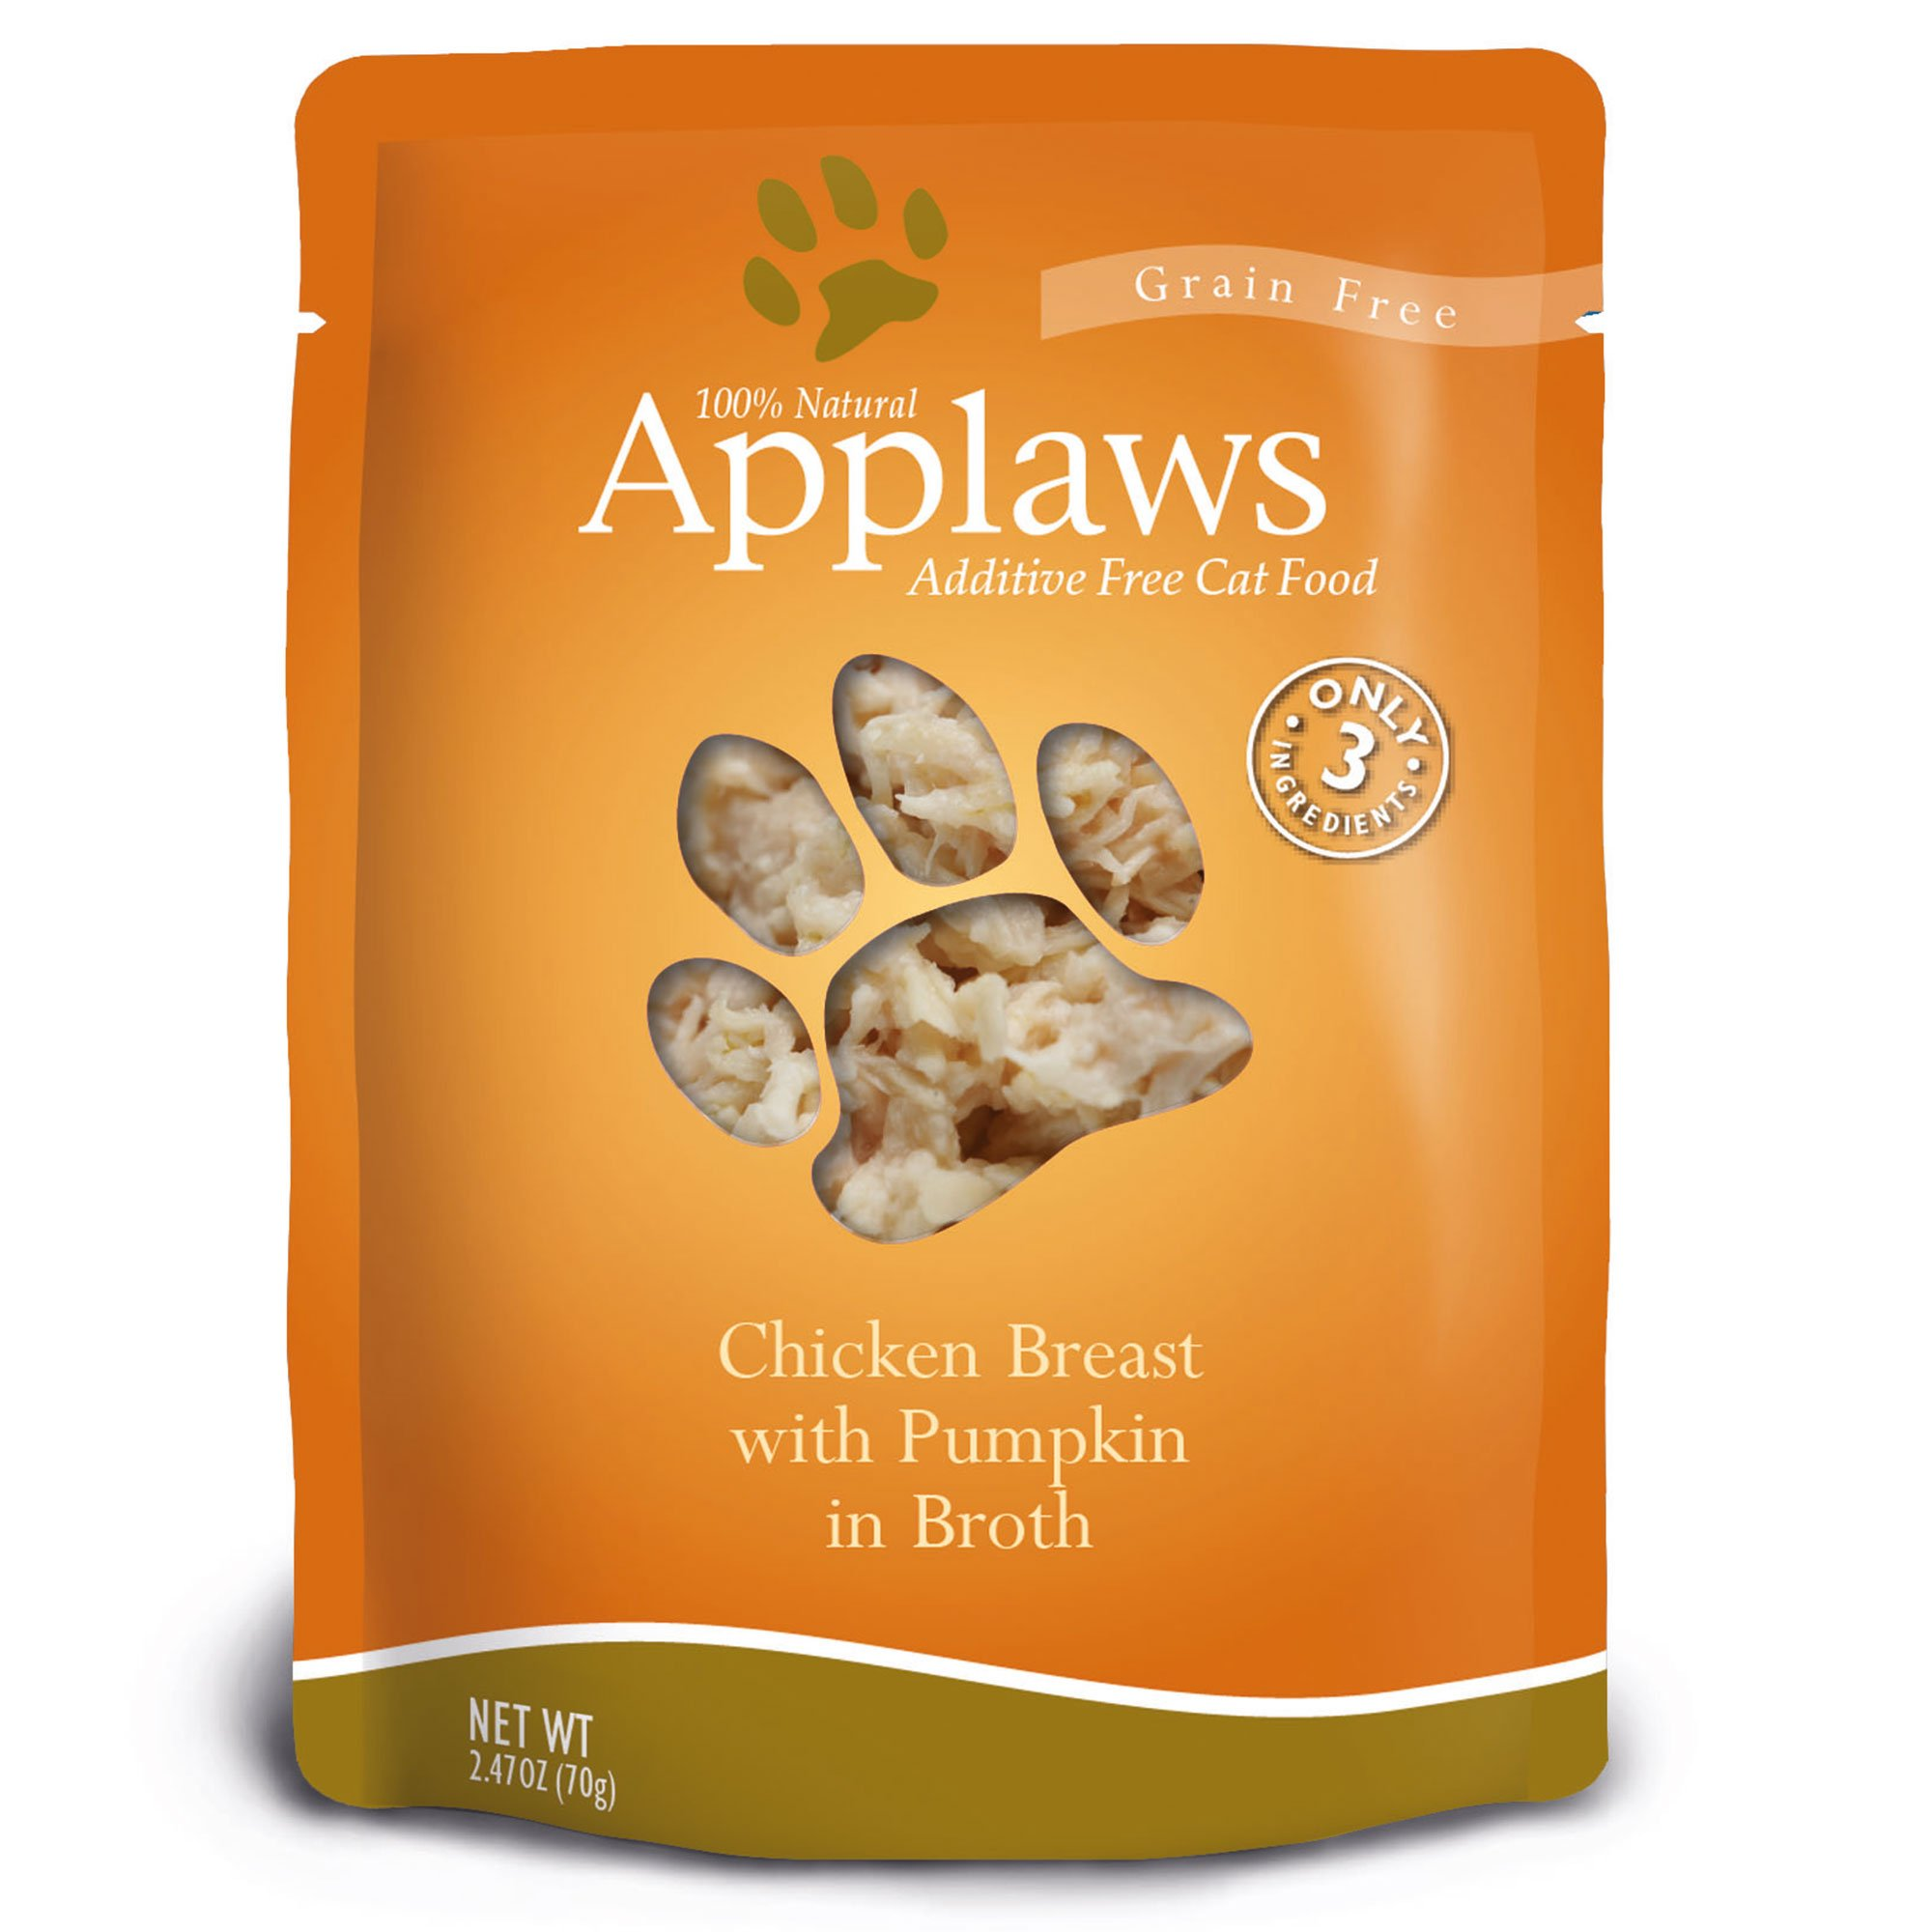 Applaws Chicken Breast with Pumpkin in Broth Pouch Grain Free Cat Food